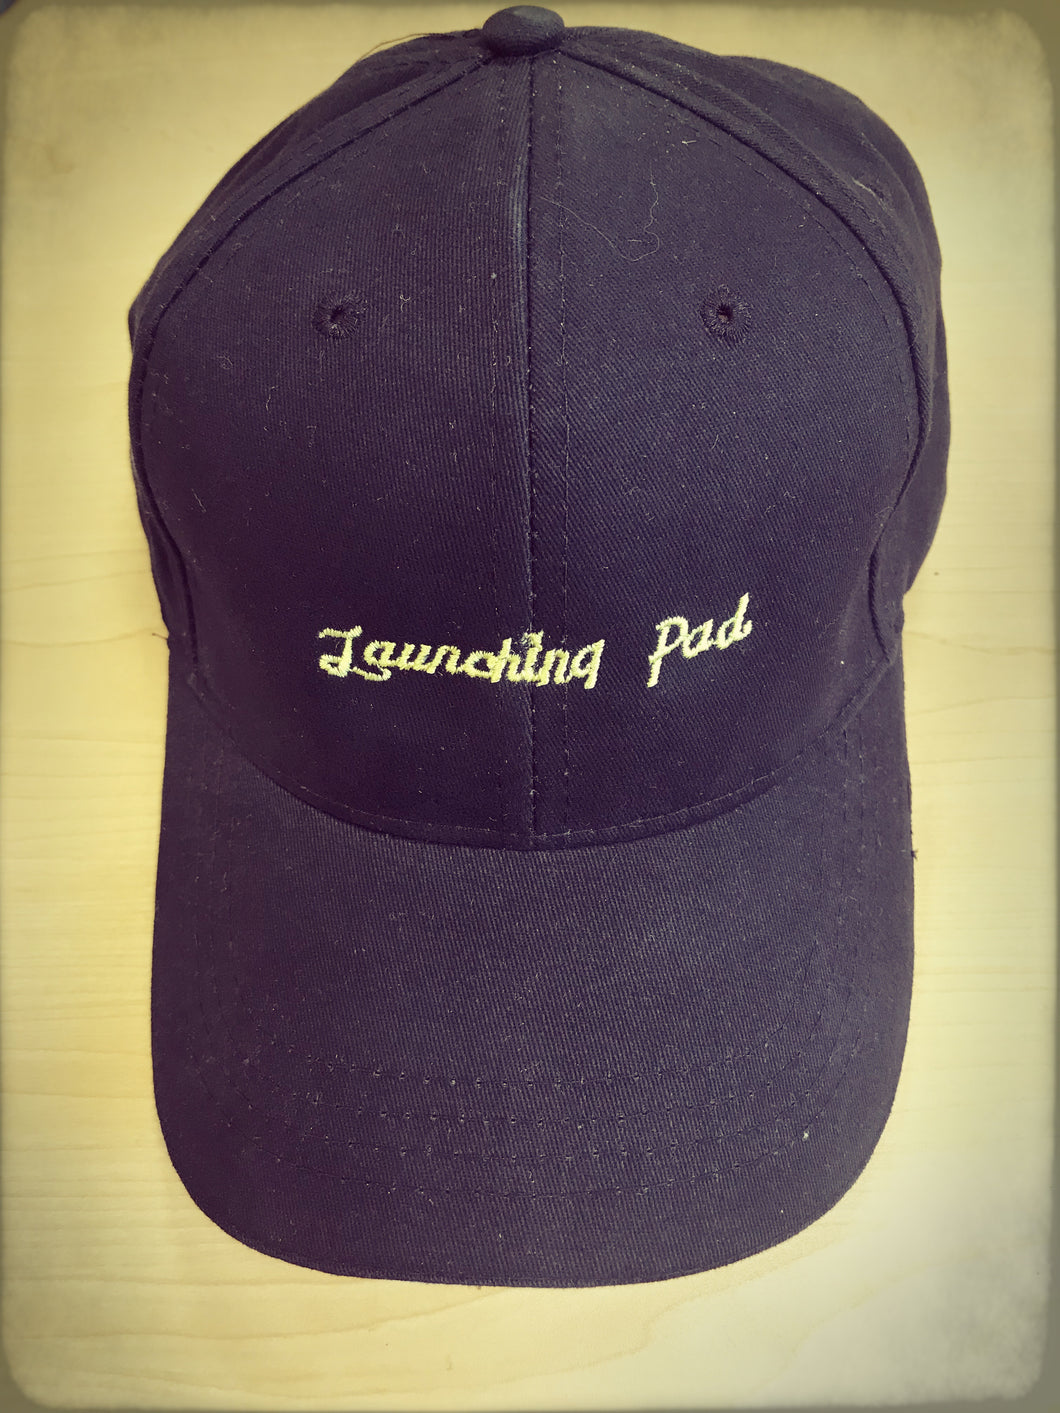 Launching Pad Embroidered Hat